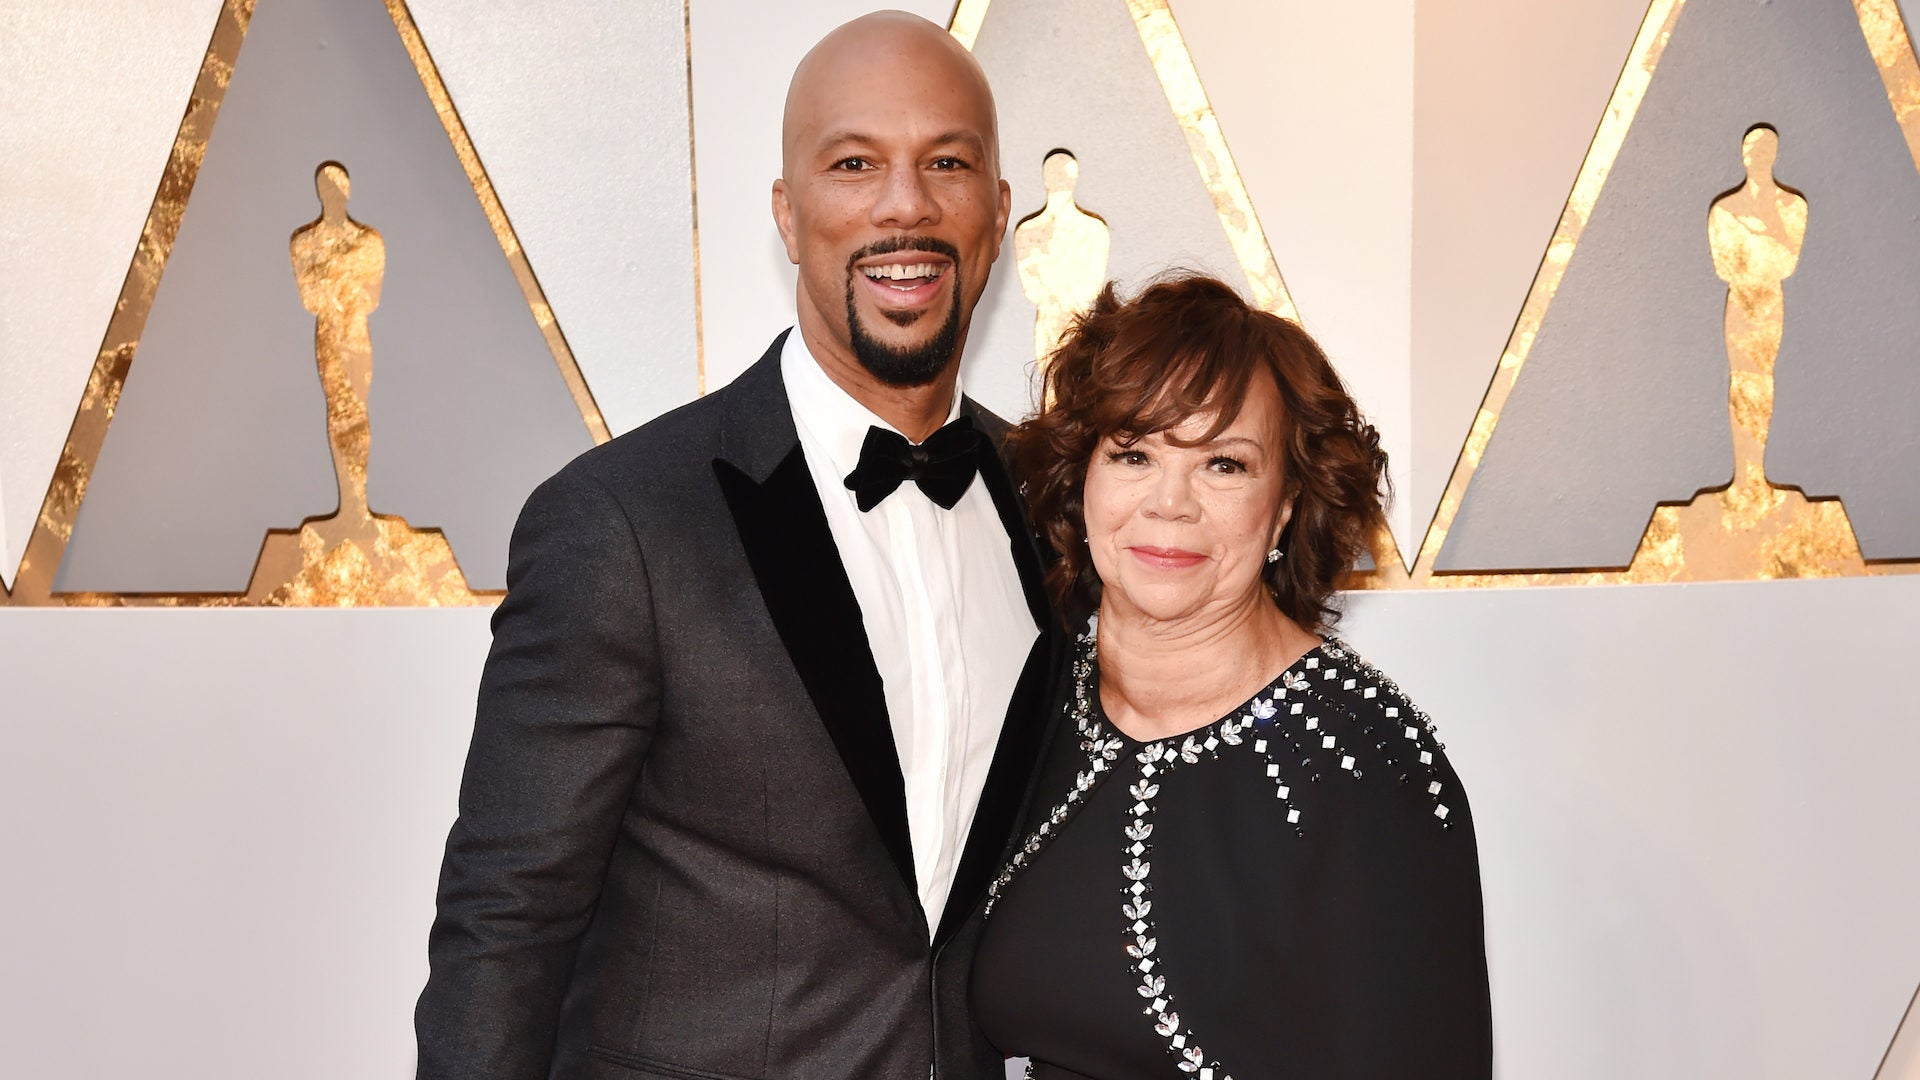 Common Shares How His Mom Reacted To His Molestation Incident